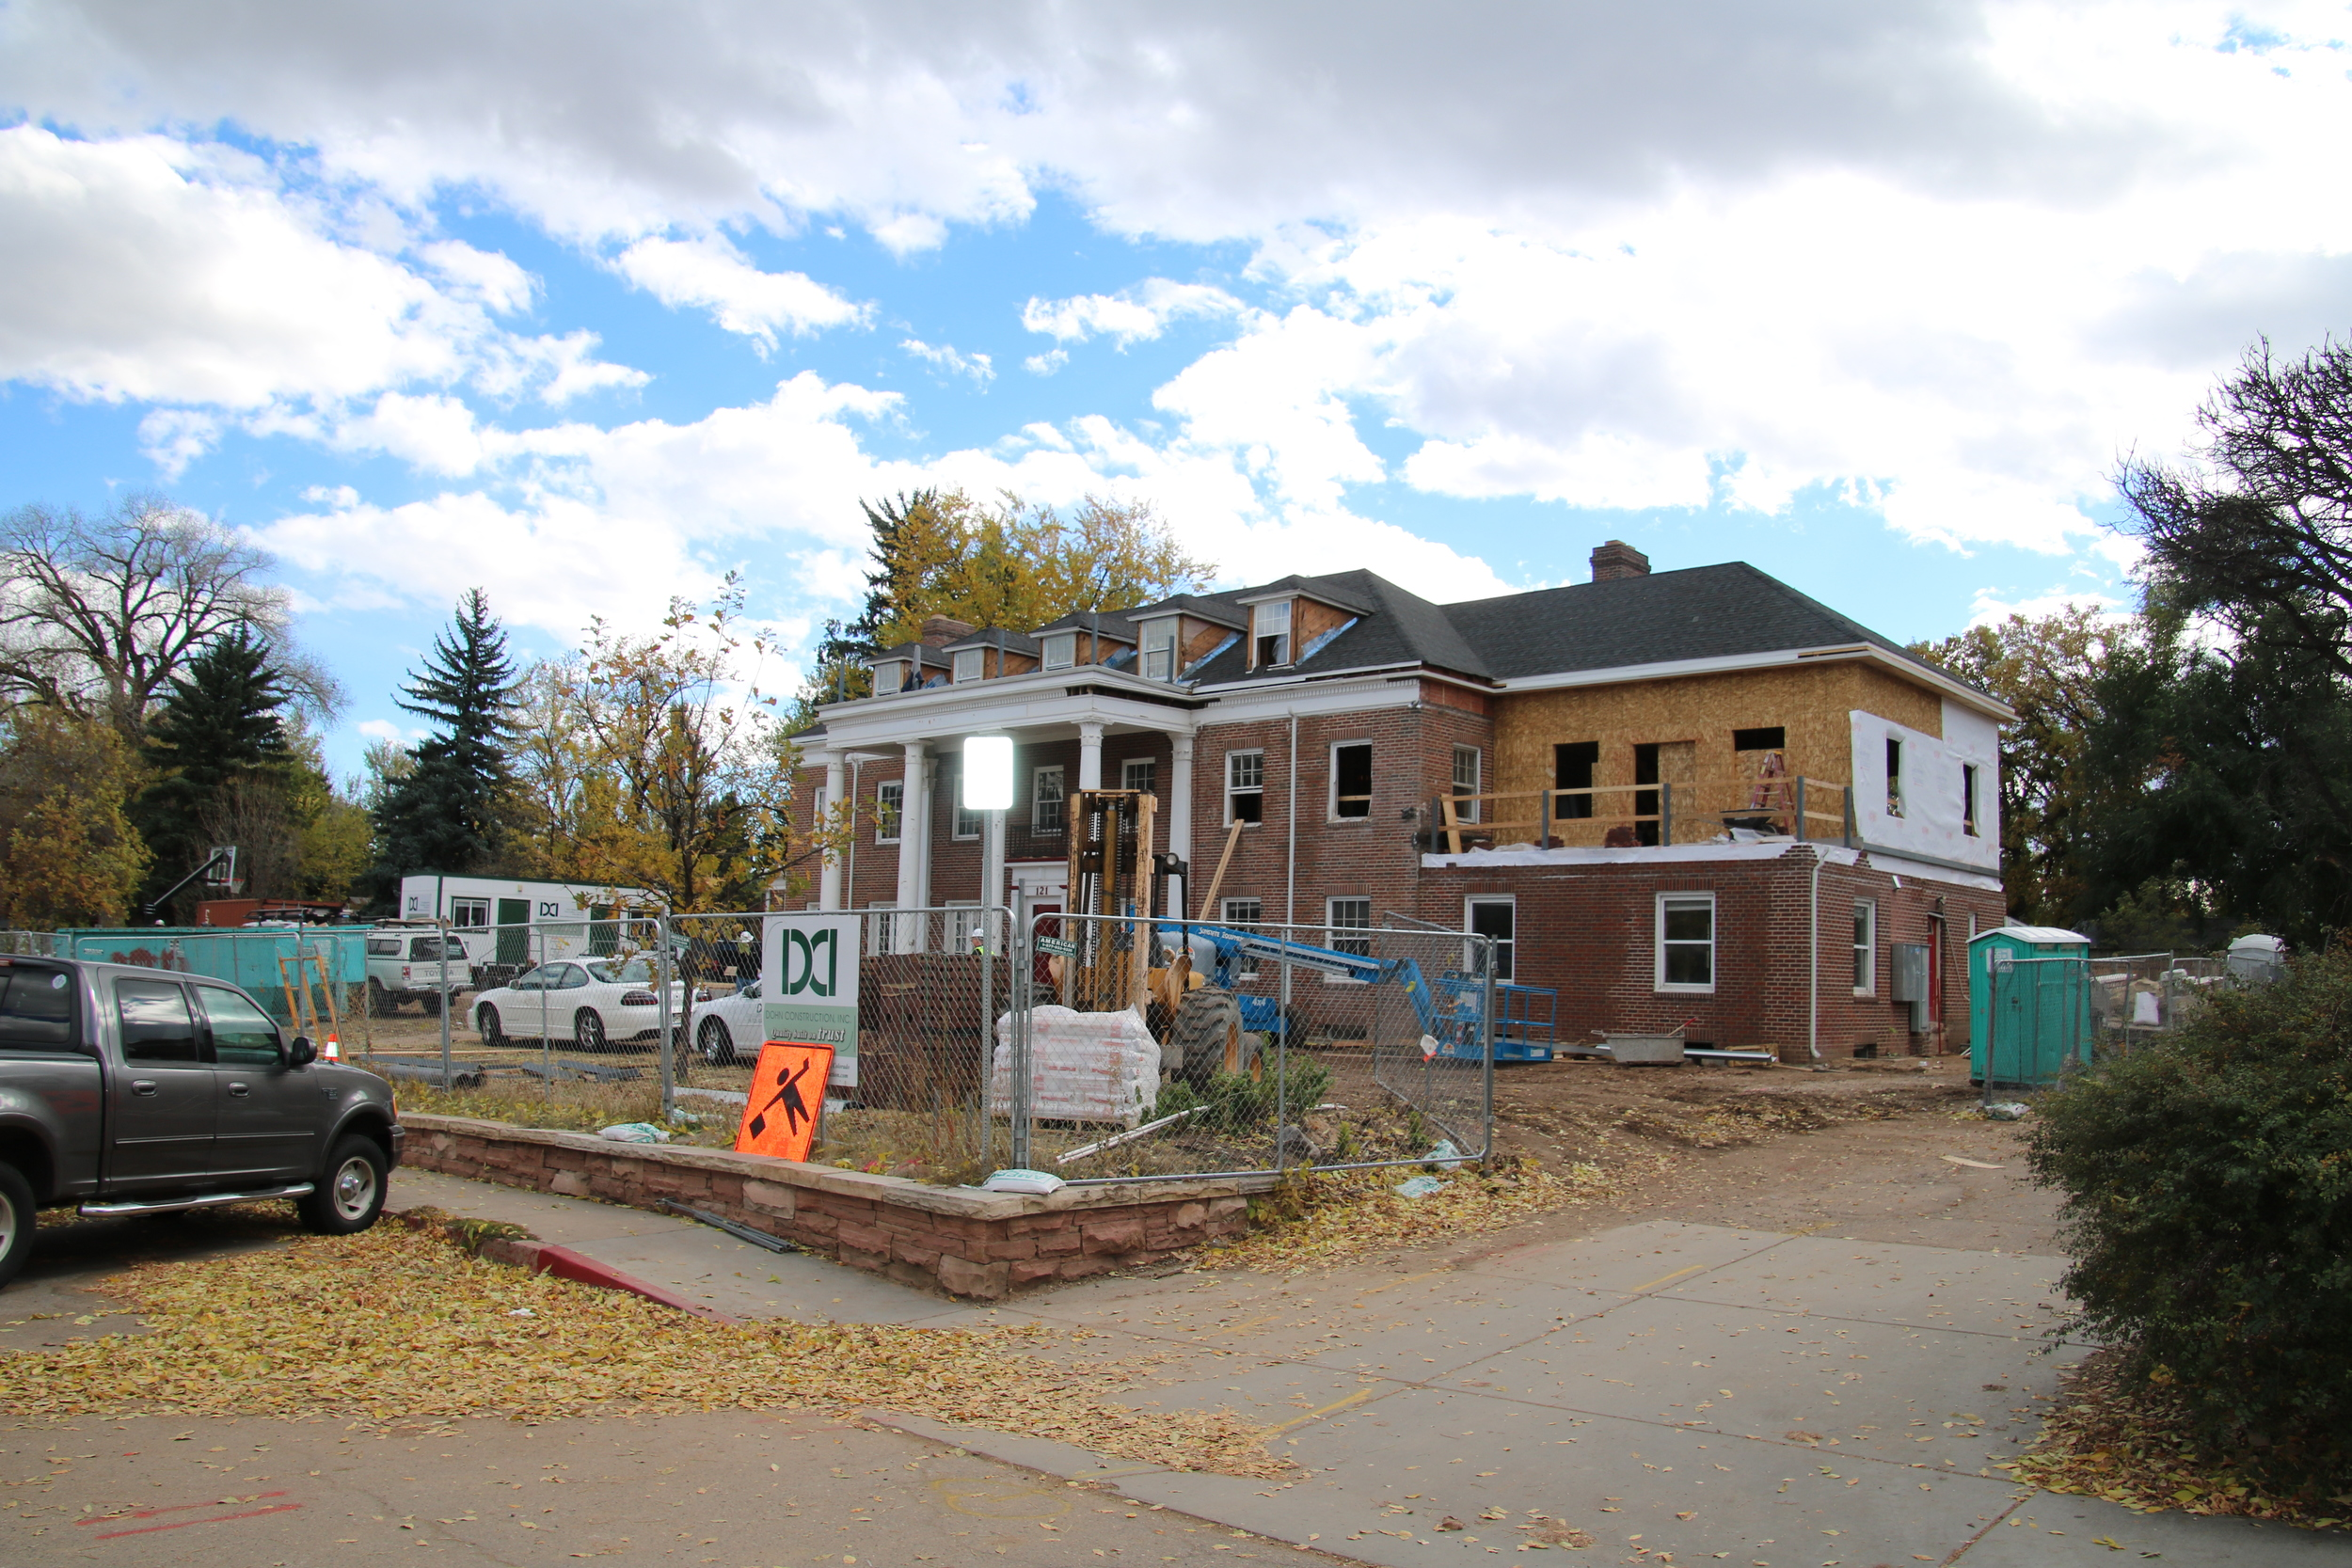 2015-10-26 overall construction site.JPG